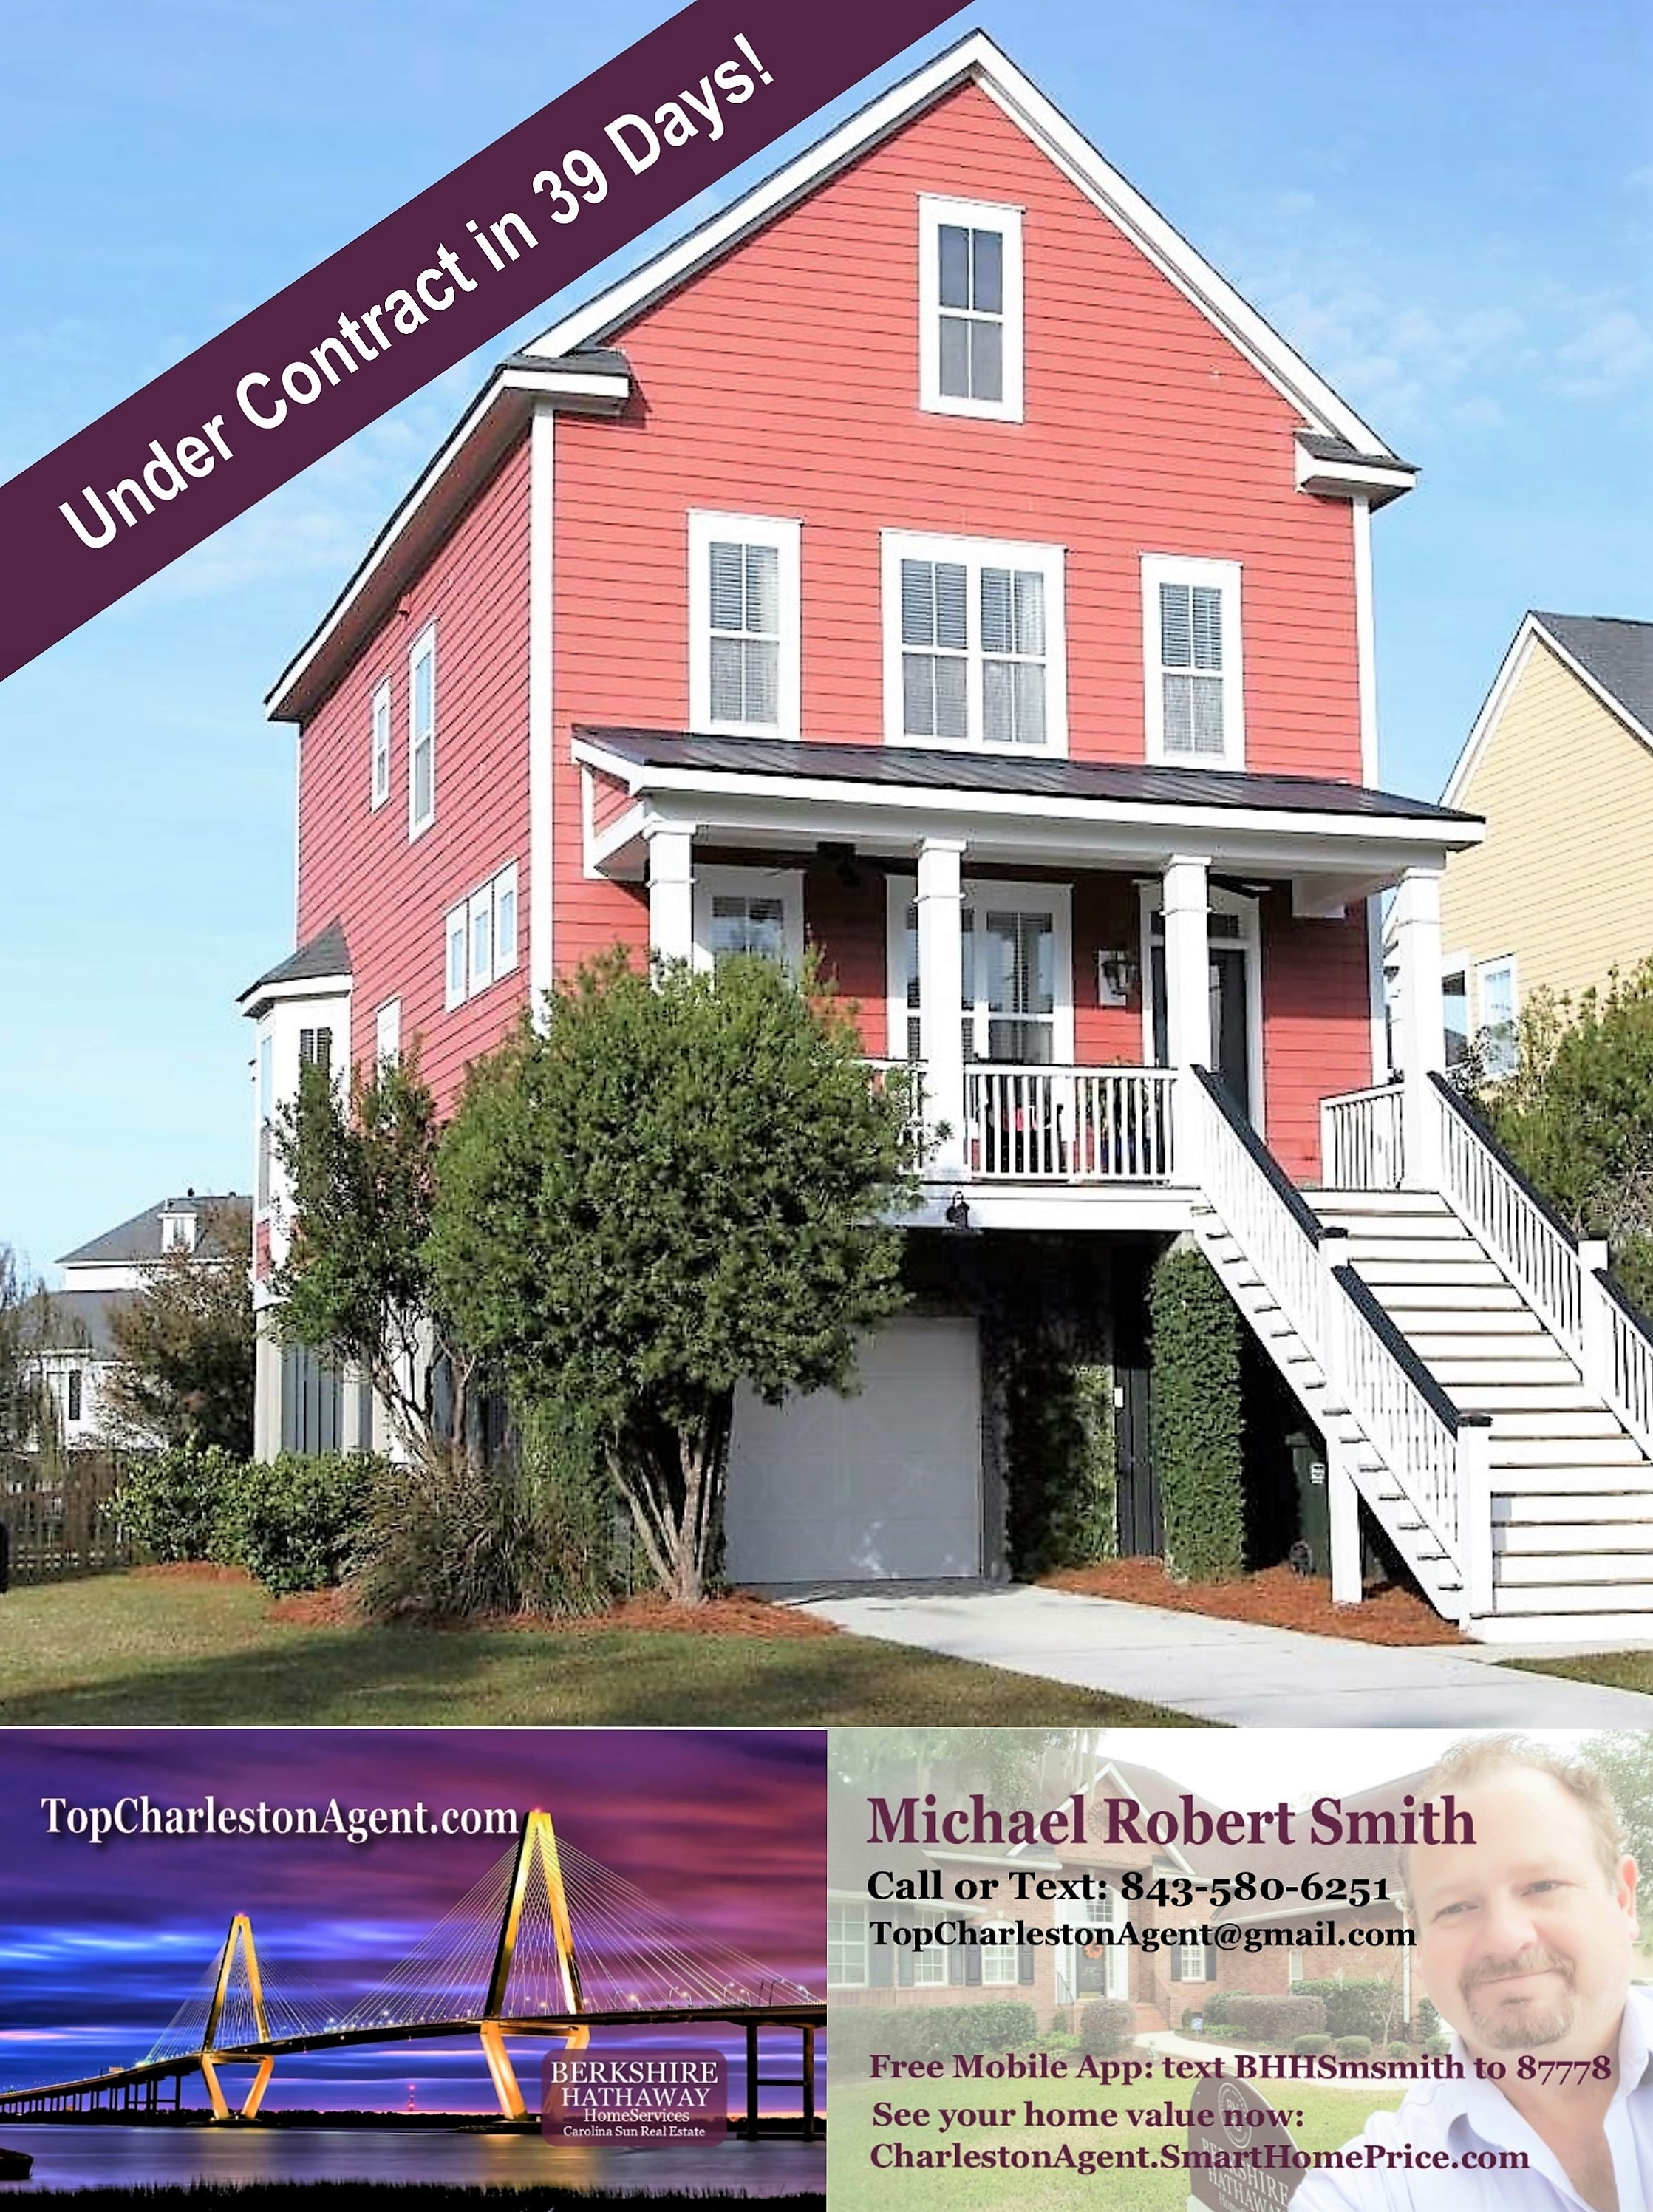 Michael Smith Team - Berkshire Hathaway HomeServices 1440 Ben Sawyer